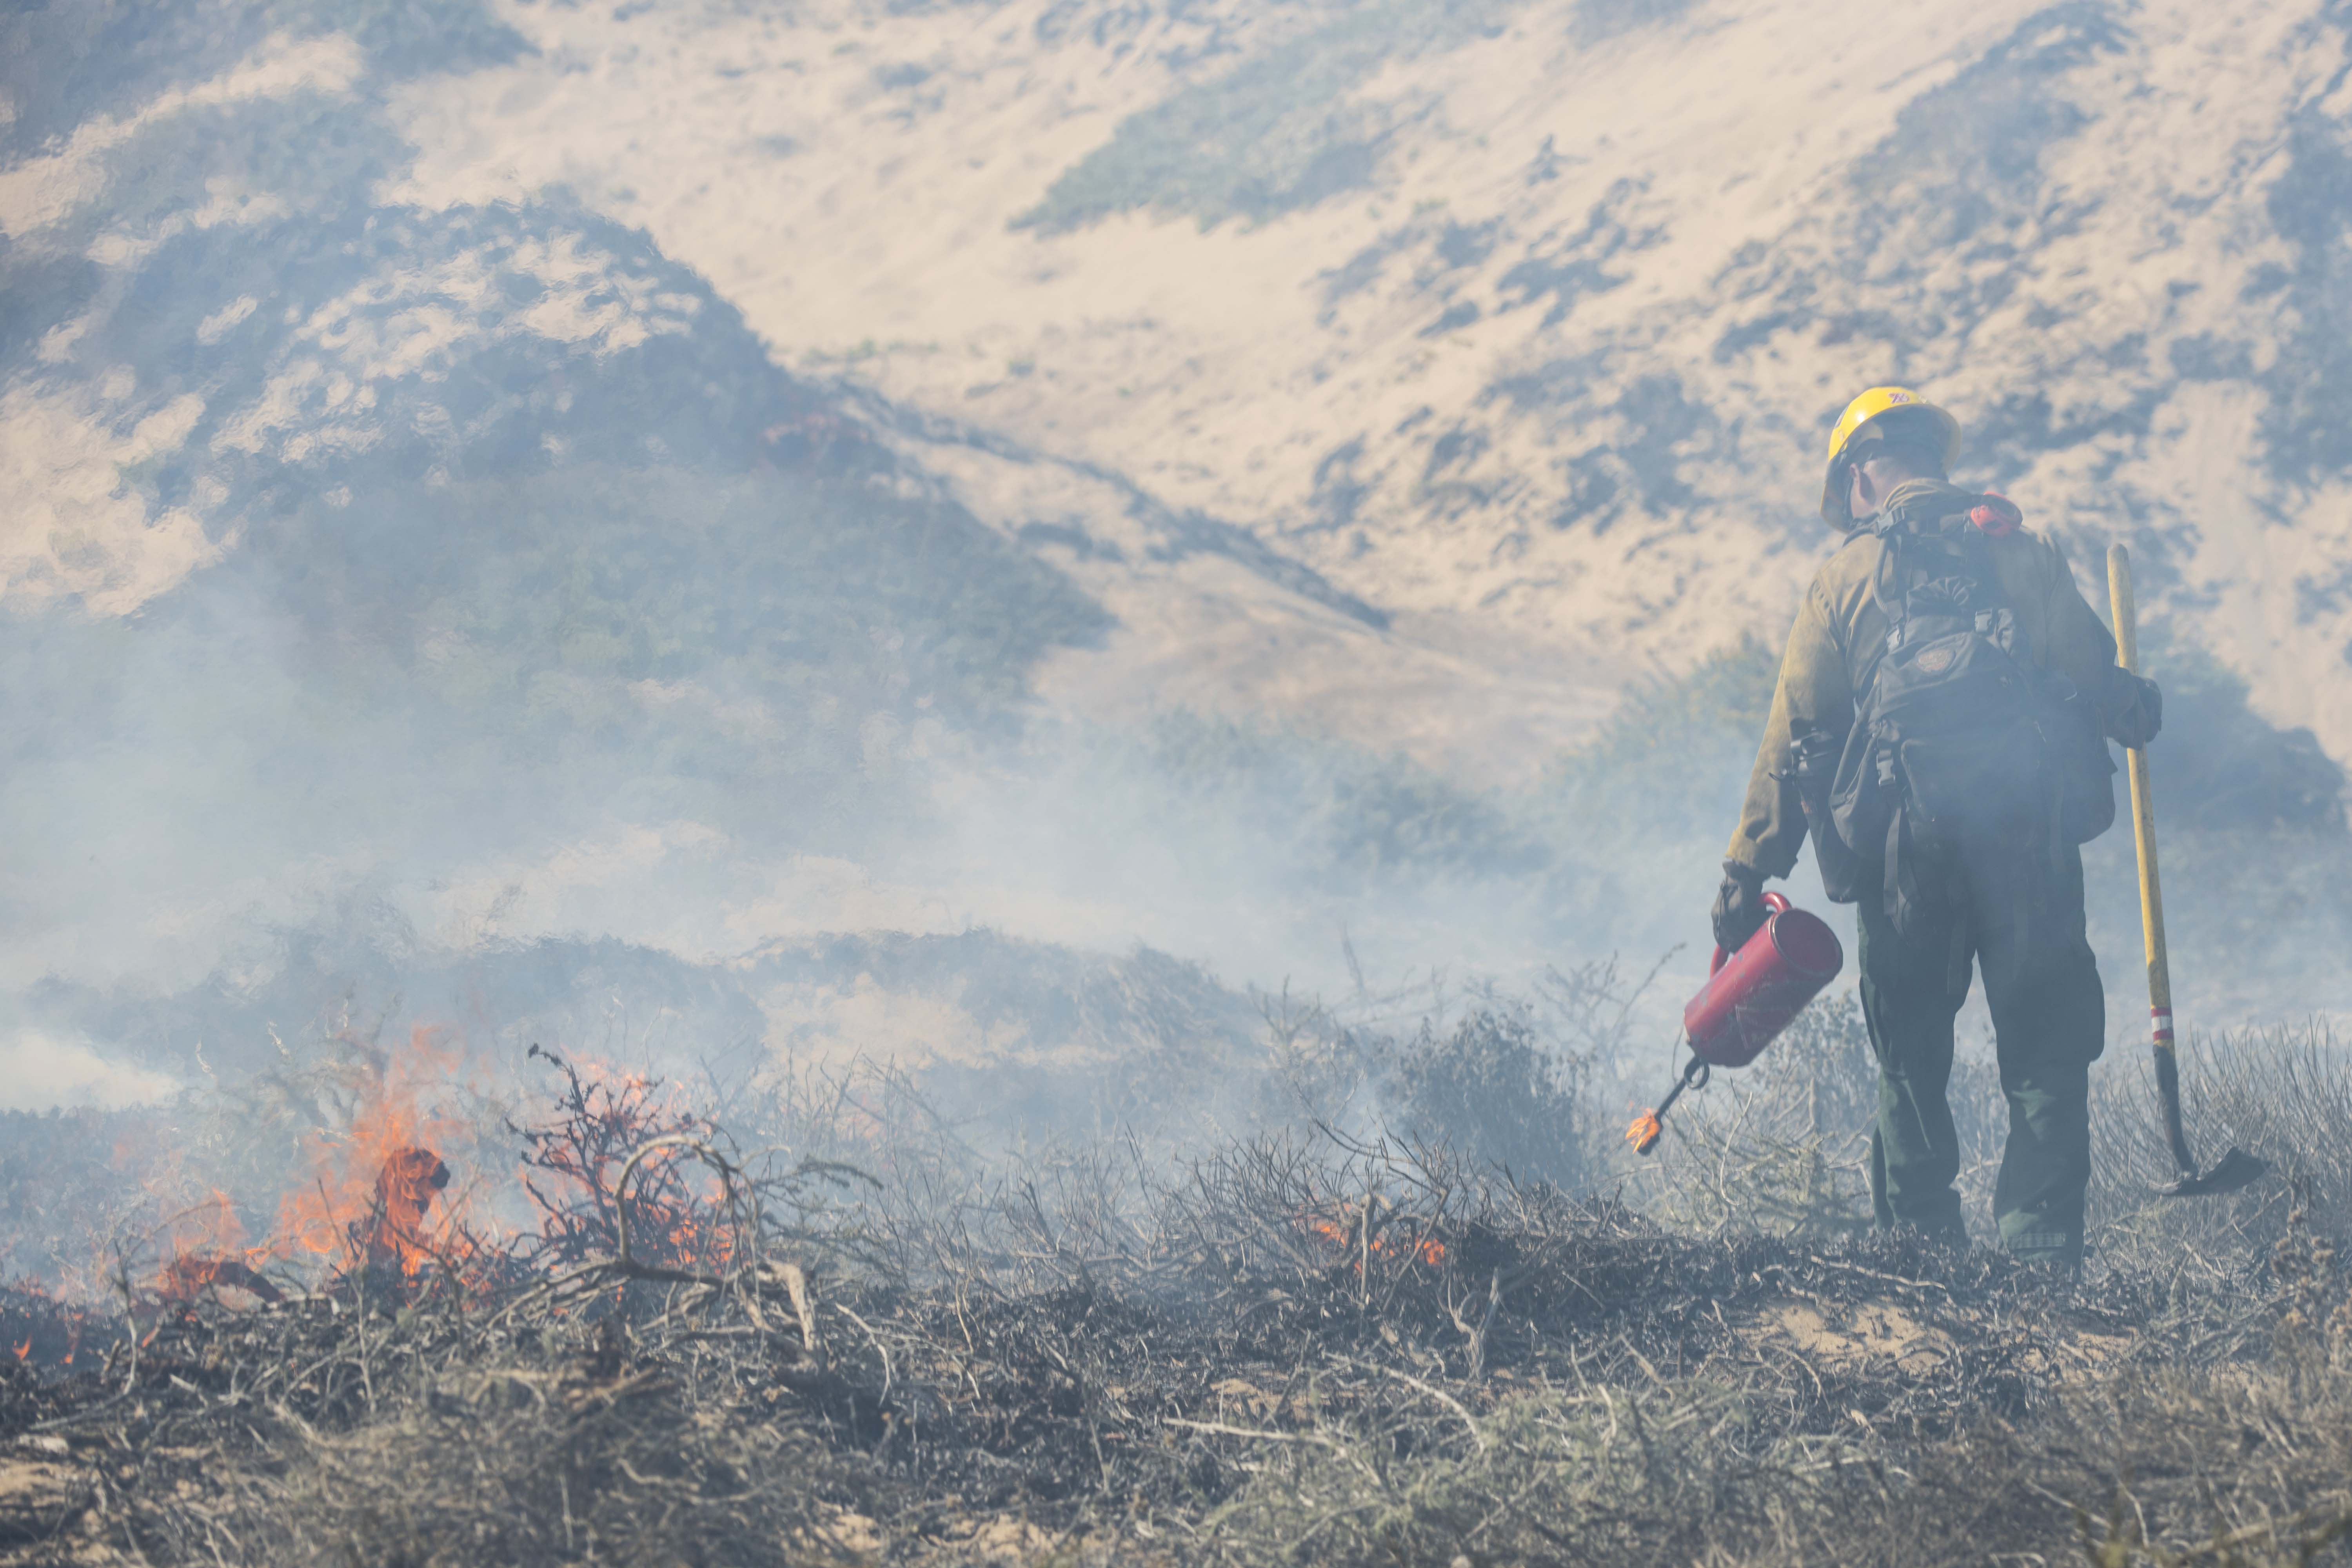 Caption: A fire fighter monitors a controlled burn Sept. 18, 2019 at Vandenberg Air Force Base, Calif. The burn was intended to reduce the risk of wildfires., Credit: Aubree Milks / U.S. Air Force